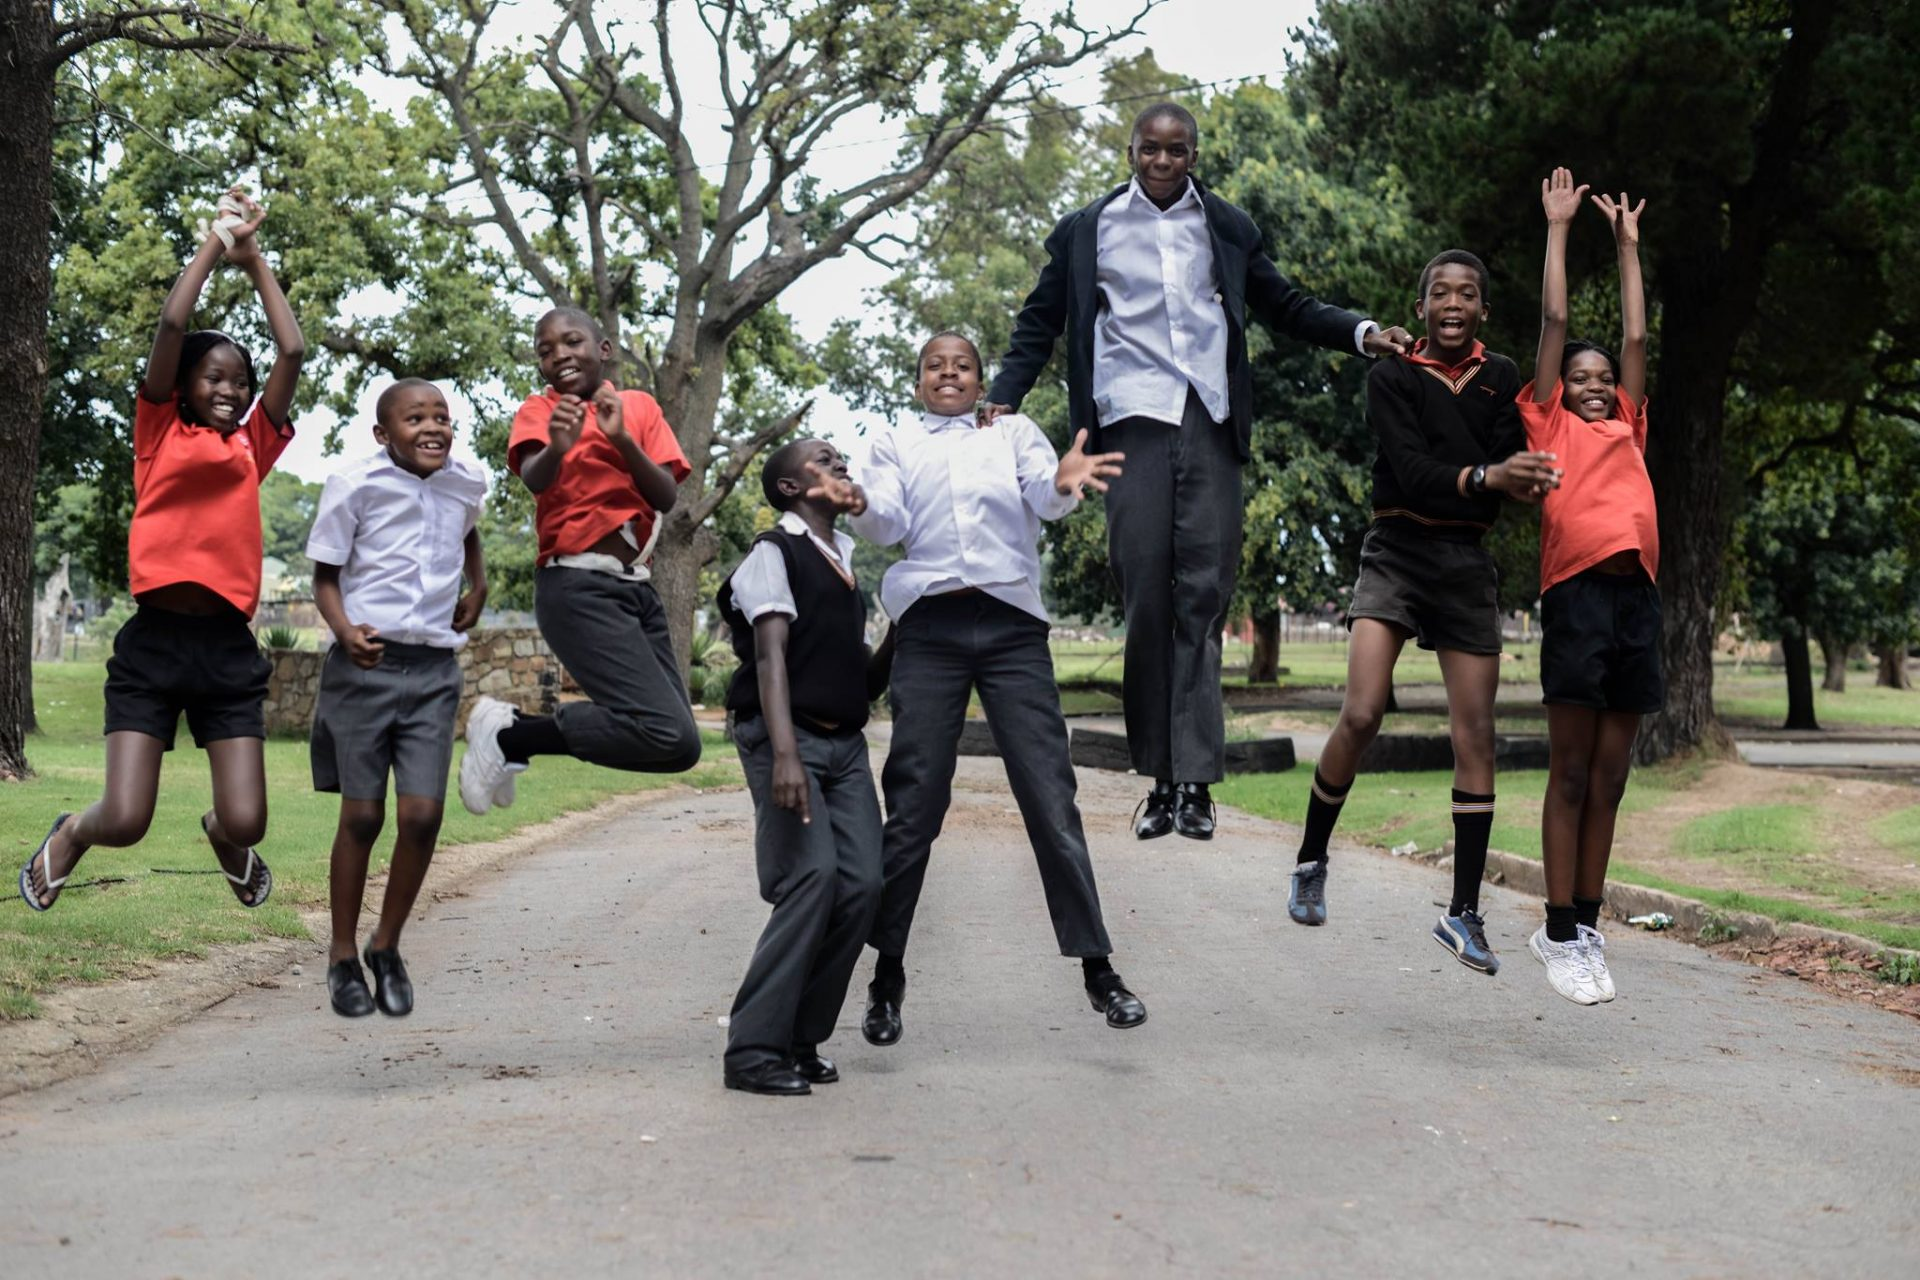 jumping youth South Africa